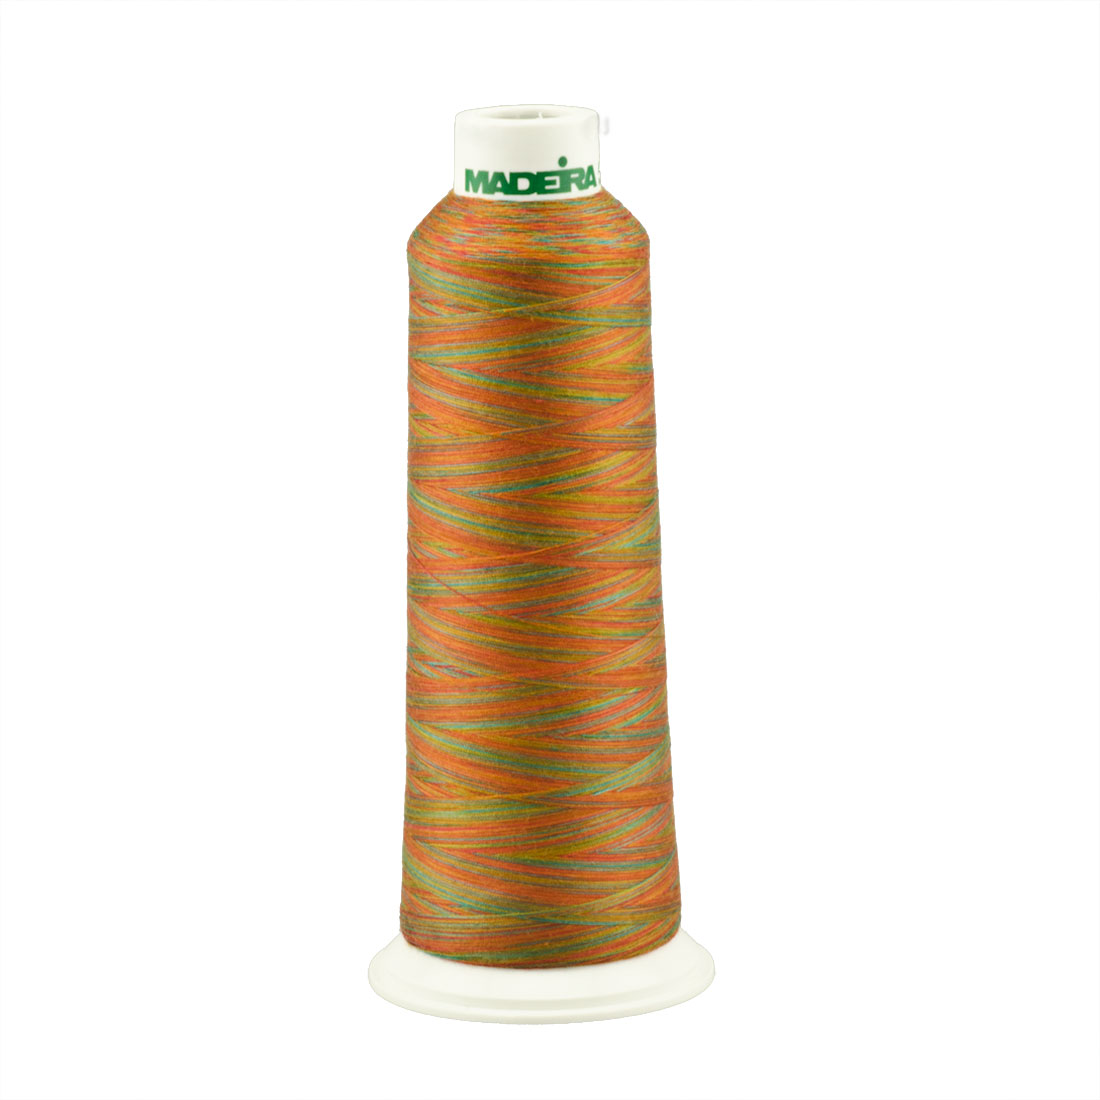 Madeira Sunset Aeroquilt 3000 Yard Cone Variegated Poly Quilting Thread